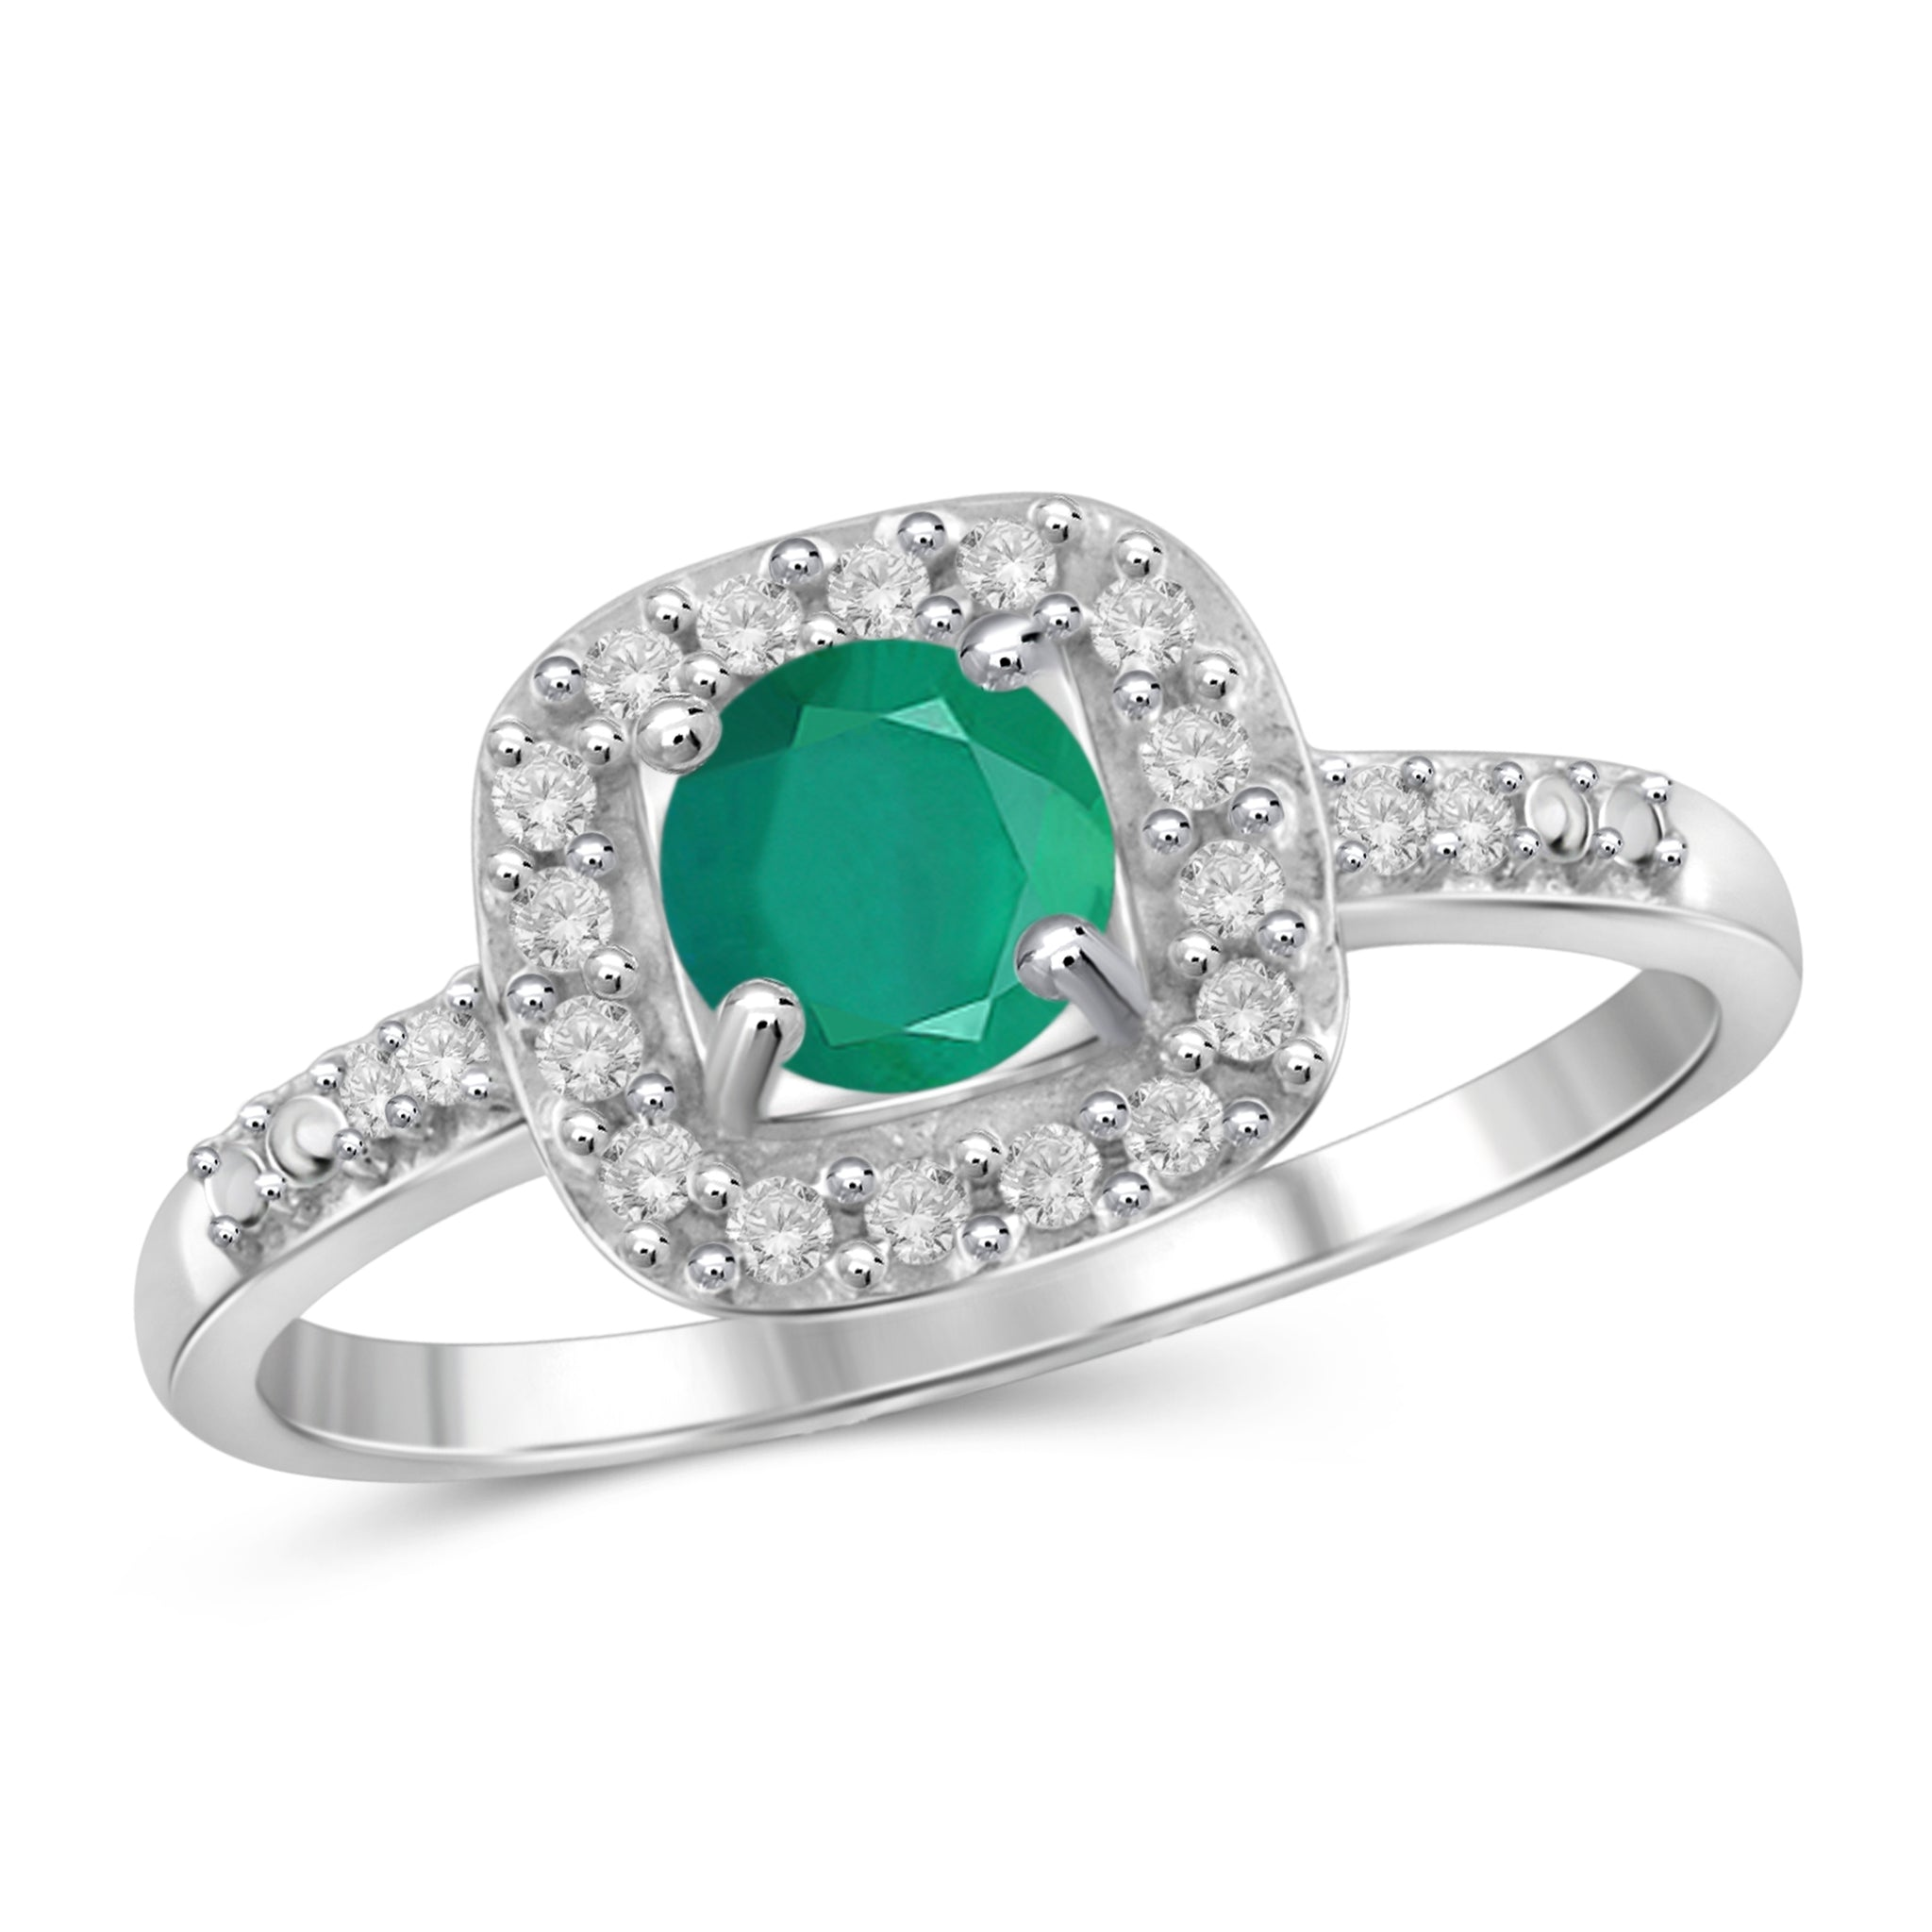 JewelonFire 1/2 Carat T.G.W. Emerald and White Diamond Accent Sterling Silver Ring- Assorted Colors